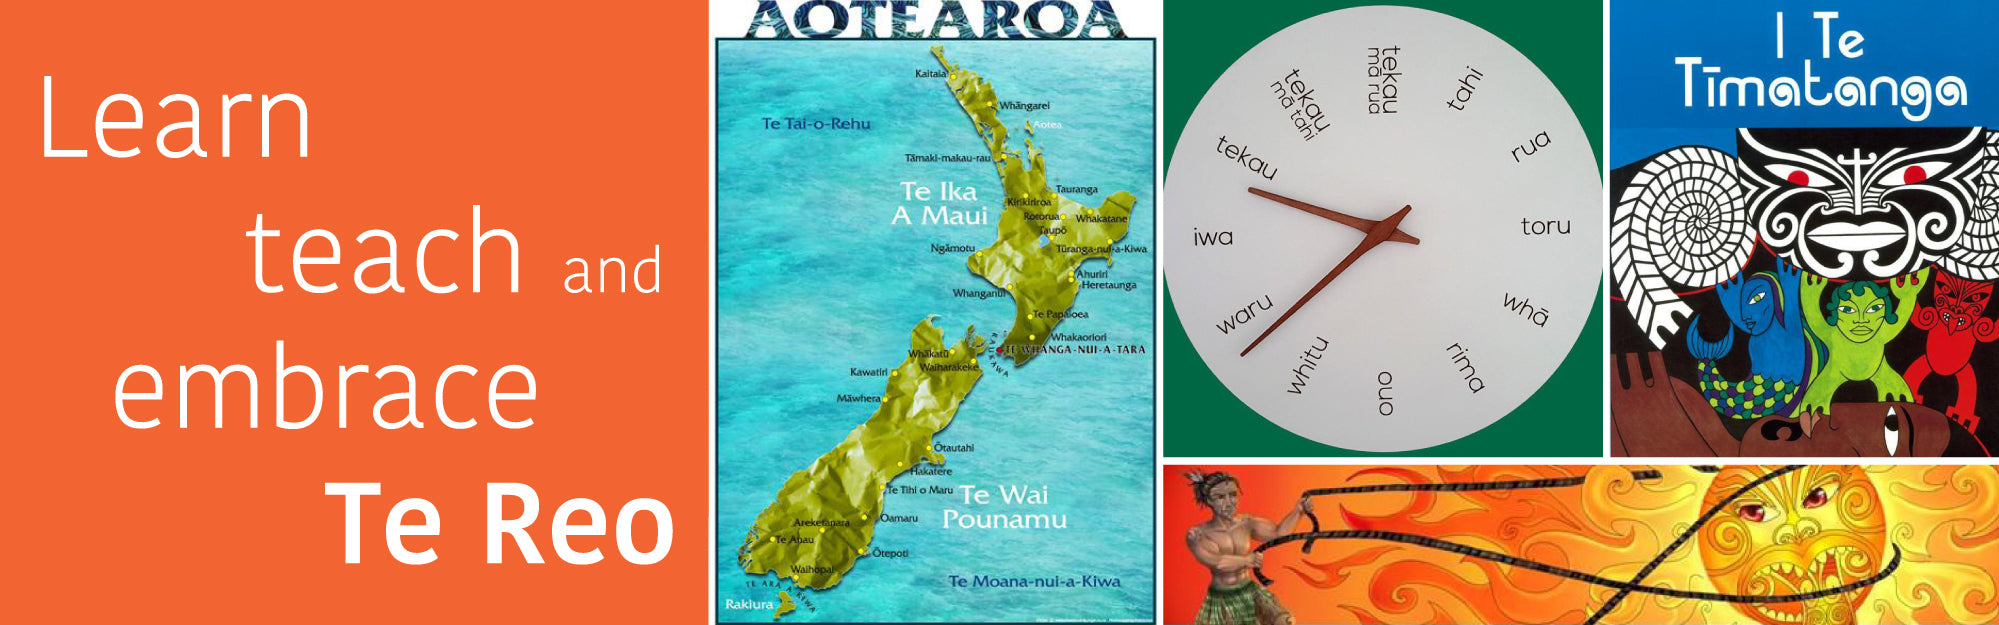 blackboard-jungle-educational-resources-learning